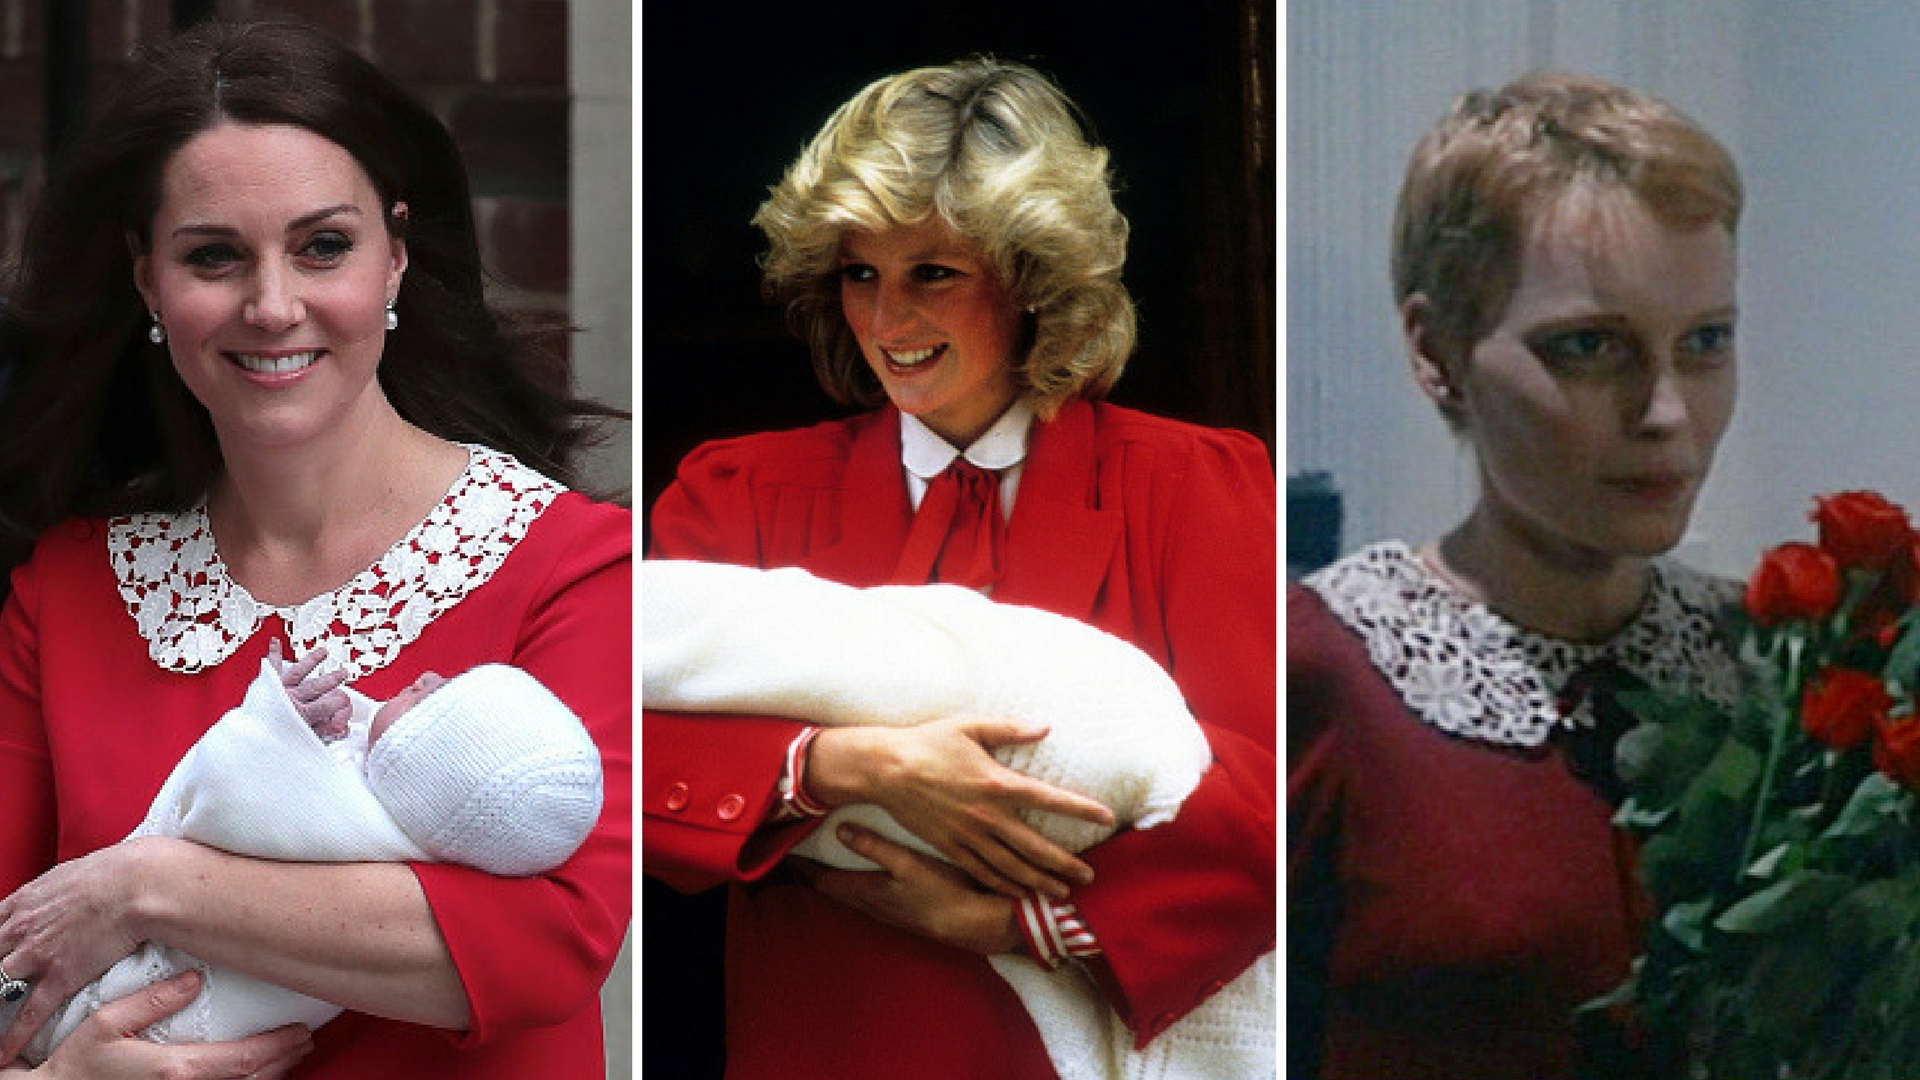 Kate Middleton presents Prince Louis in 2018. Princess Diana presents Prince Harry in 1984. Rosemary...